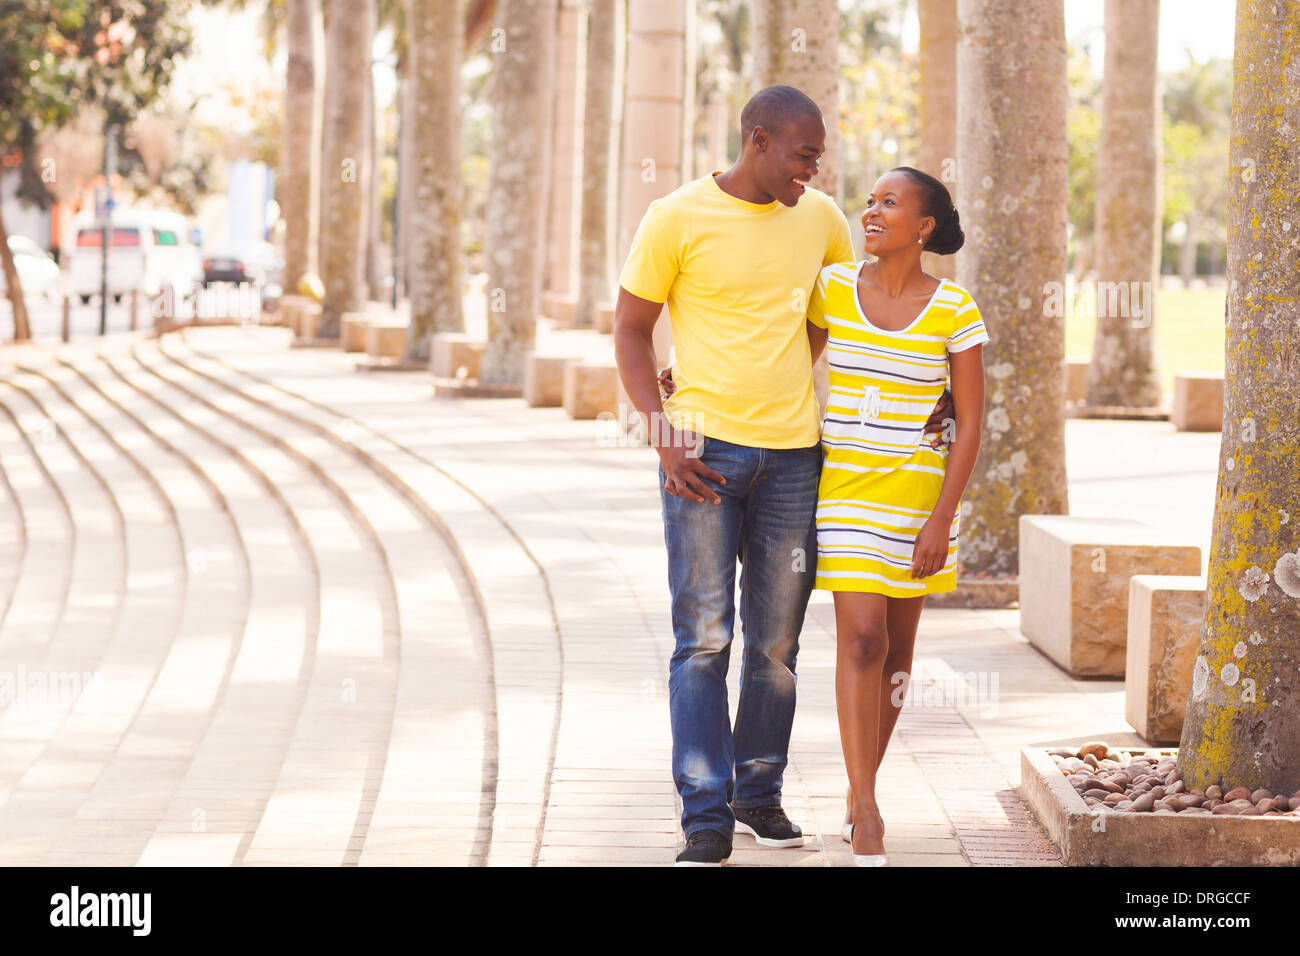 cheerful young afro American couple walking on urban street - Stock Image